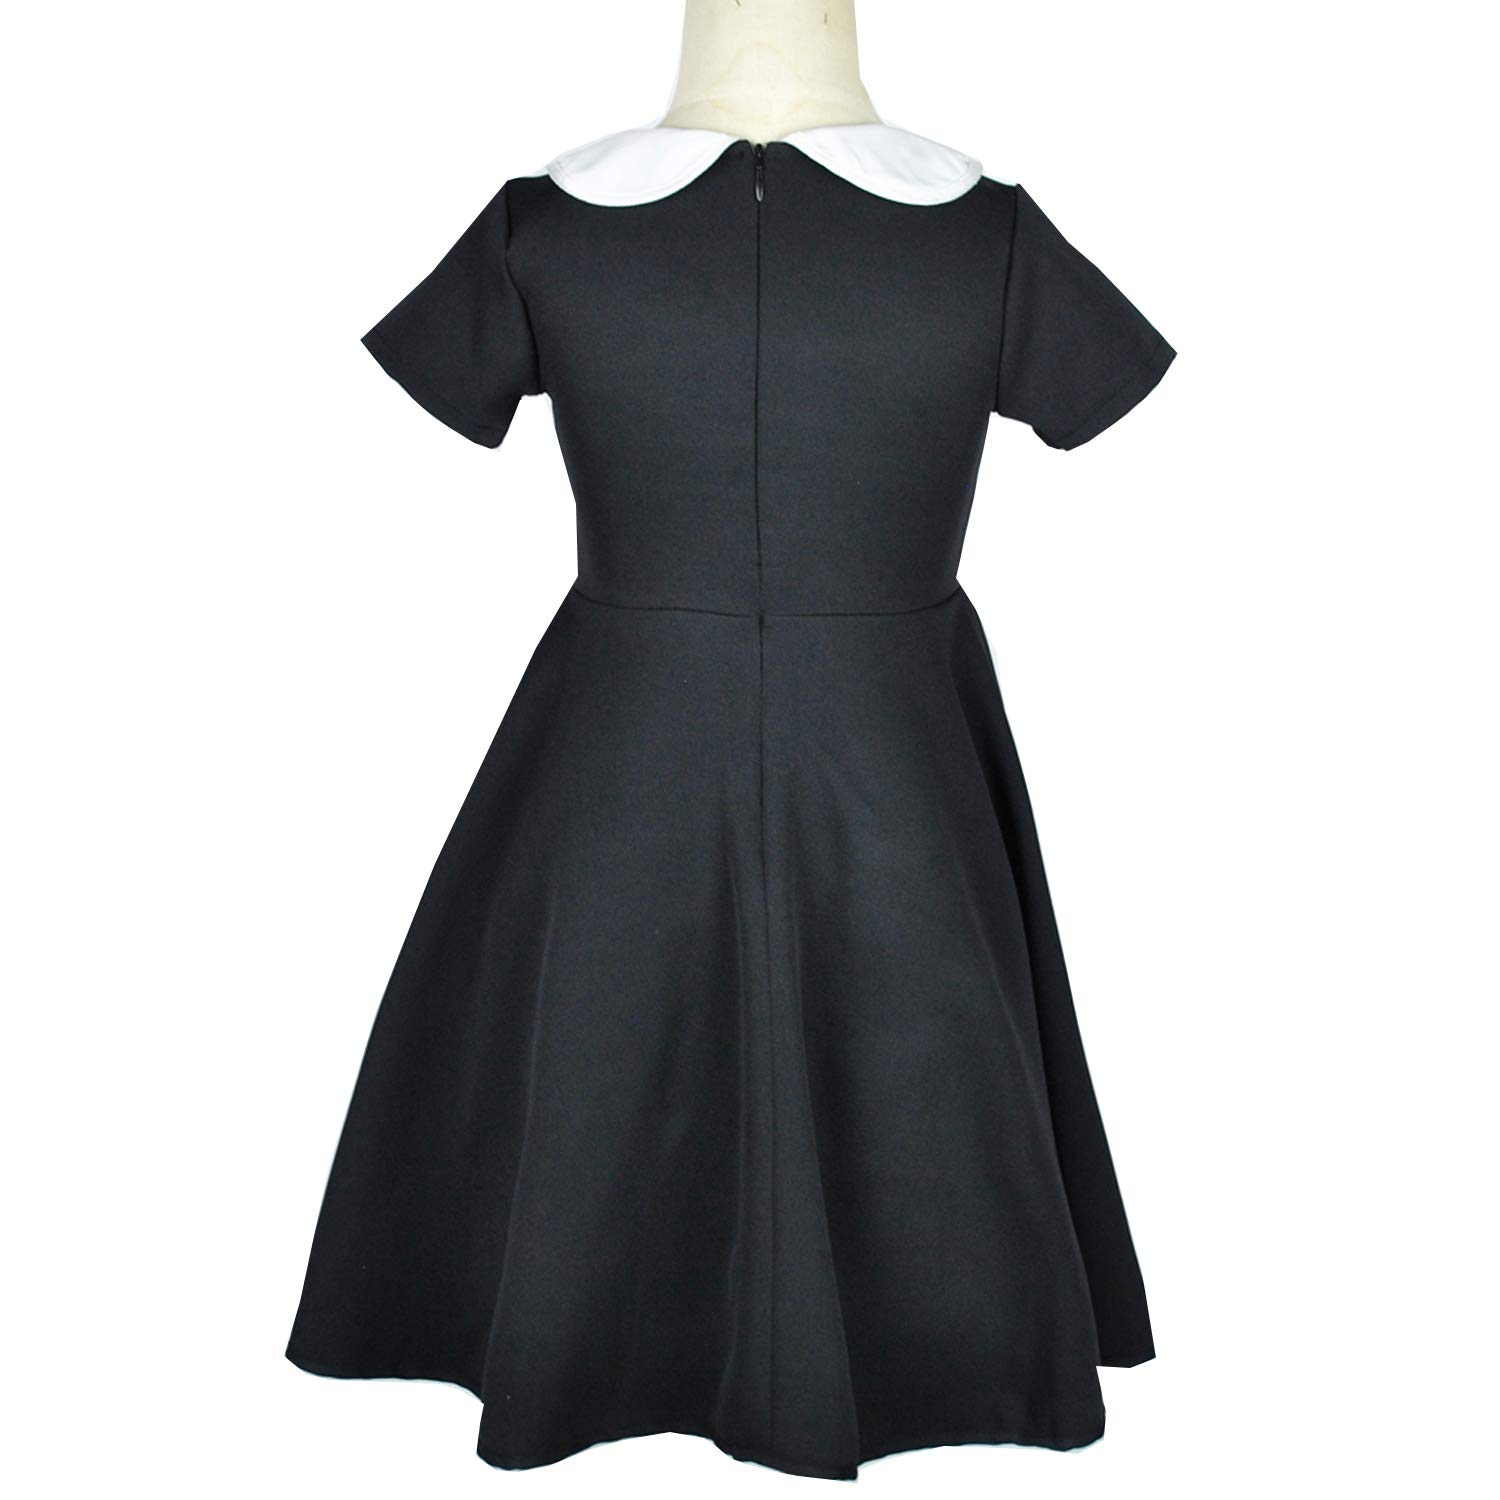 Girls Short Sleeve Casual Vintage Peter Pan Collar Fit and Flare Skater Party Dress 2-12 Years